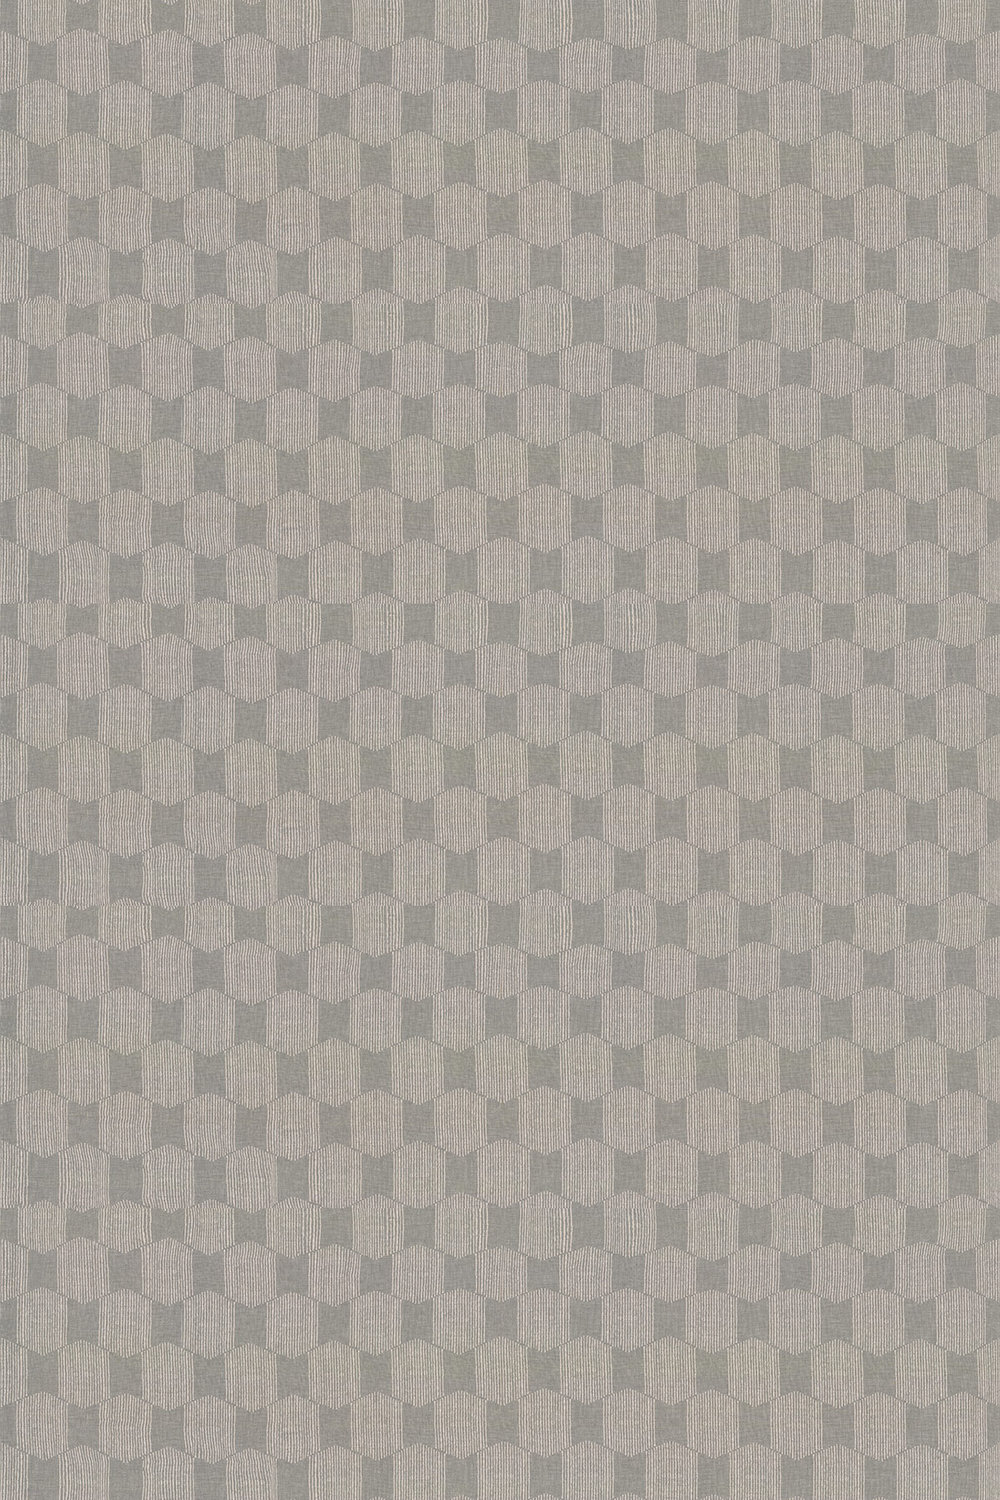 Himmeli Fabric - Pewter - by Scion